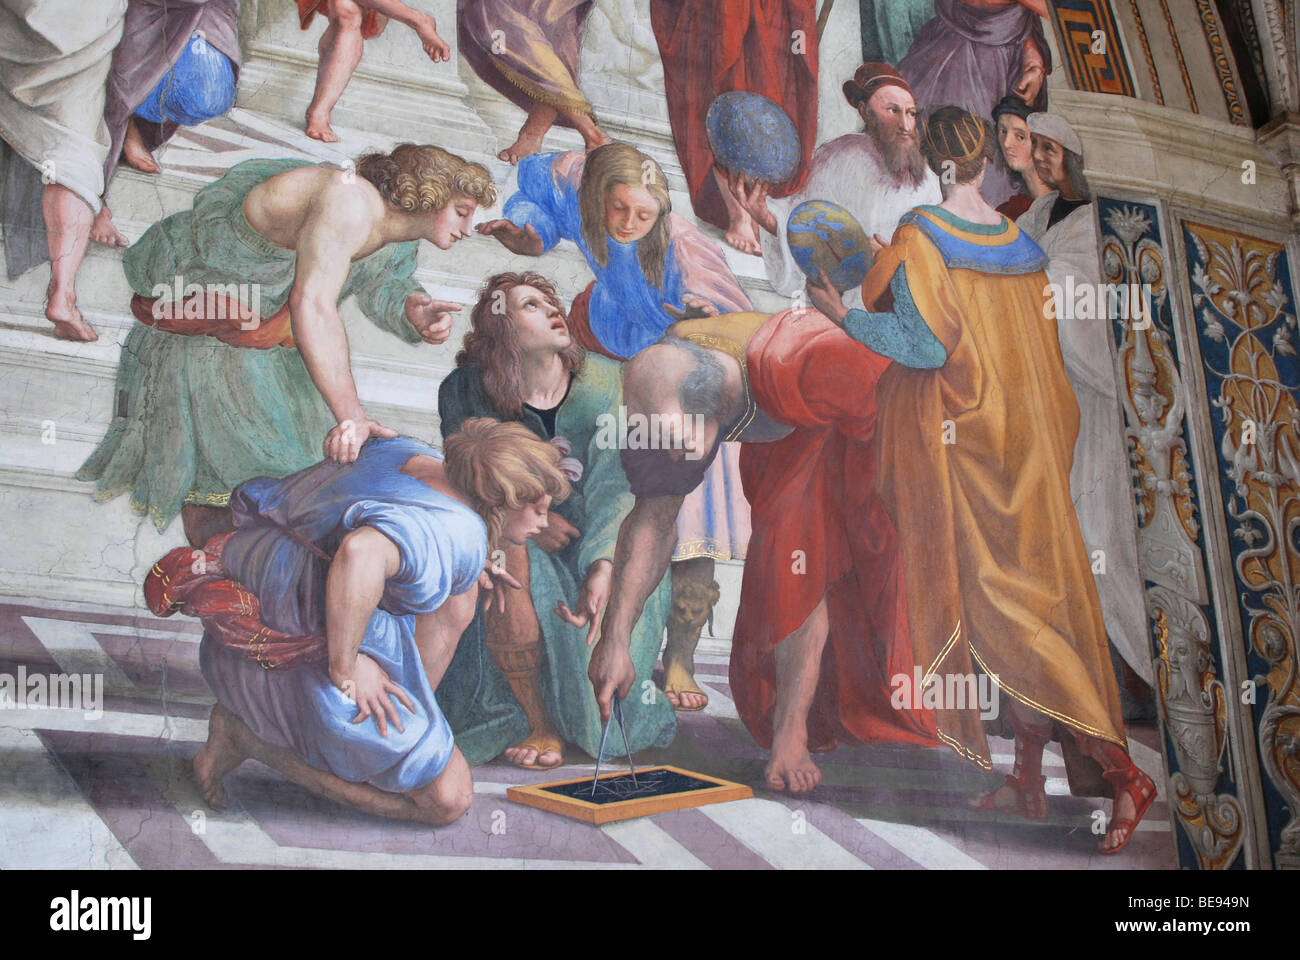 an analysis of the painting of the stanza della segnatura by raphael Freedberg, sydney, raphael's frescoes in the stanza della segnatura hersey, george, the stanze, chapter 5 in high renaissance art in st peter's and the vatican chicago, 1993.